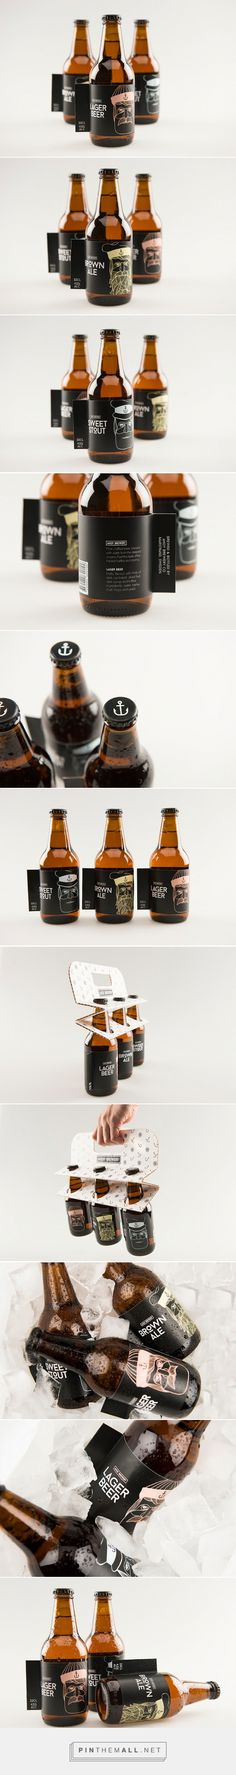 Ahoy Brewery #packaging by Rasmus Erixon - http://www.packagingoftheworld.com/2015/01/ahoy-brewery-student-project.html